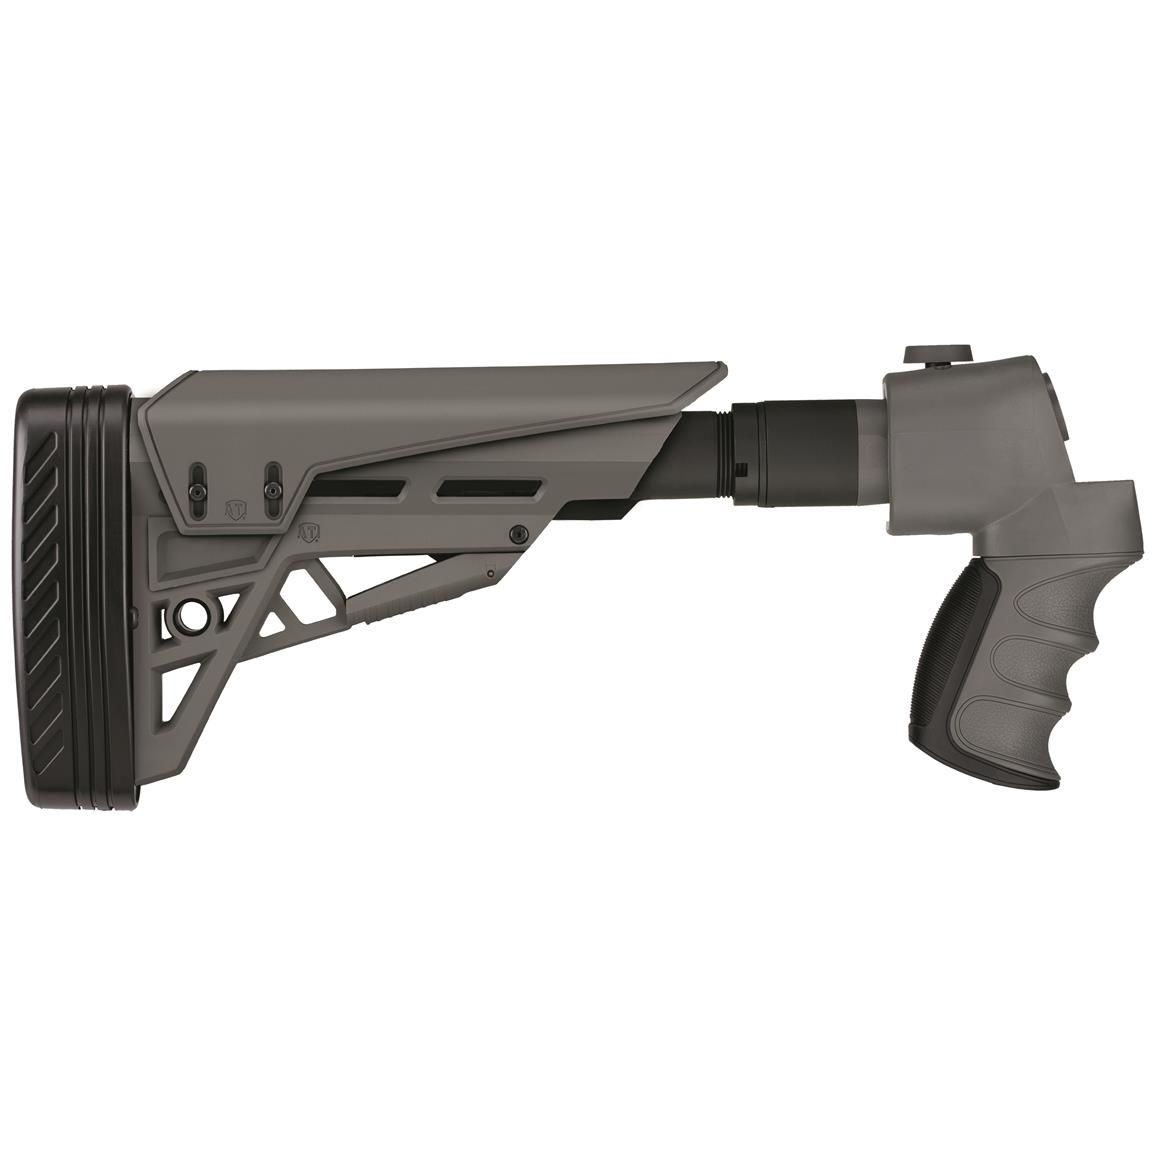 ATI TactLite StrikeForce Folding Shotgun Stock, Gray, for Mossberg / Remington / Winchester 12 Gauge